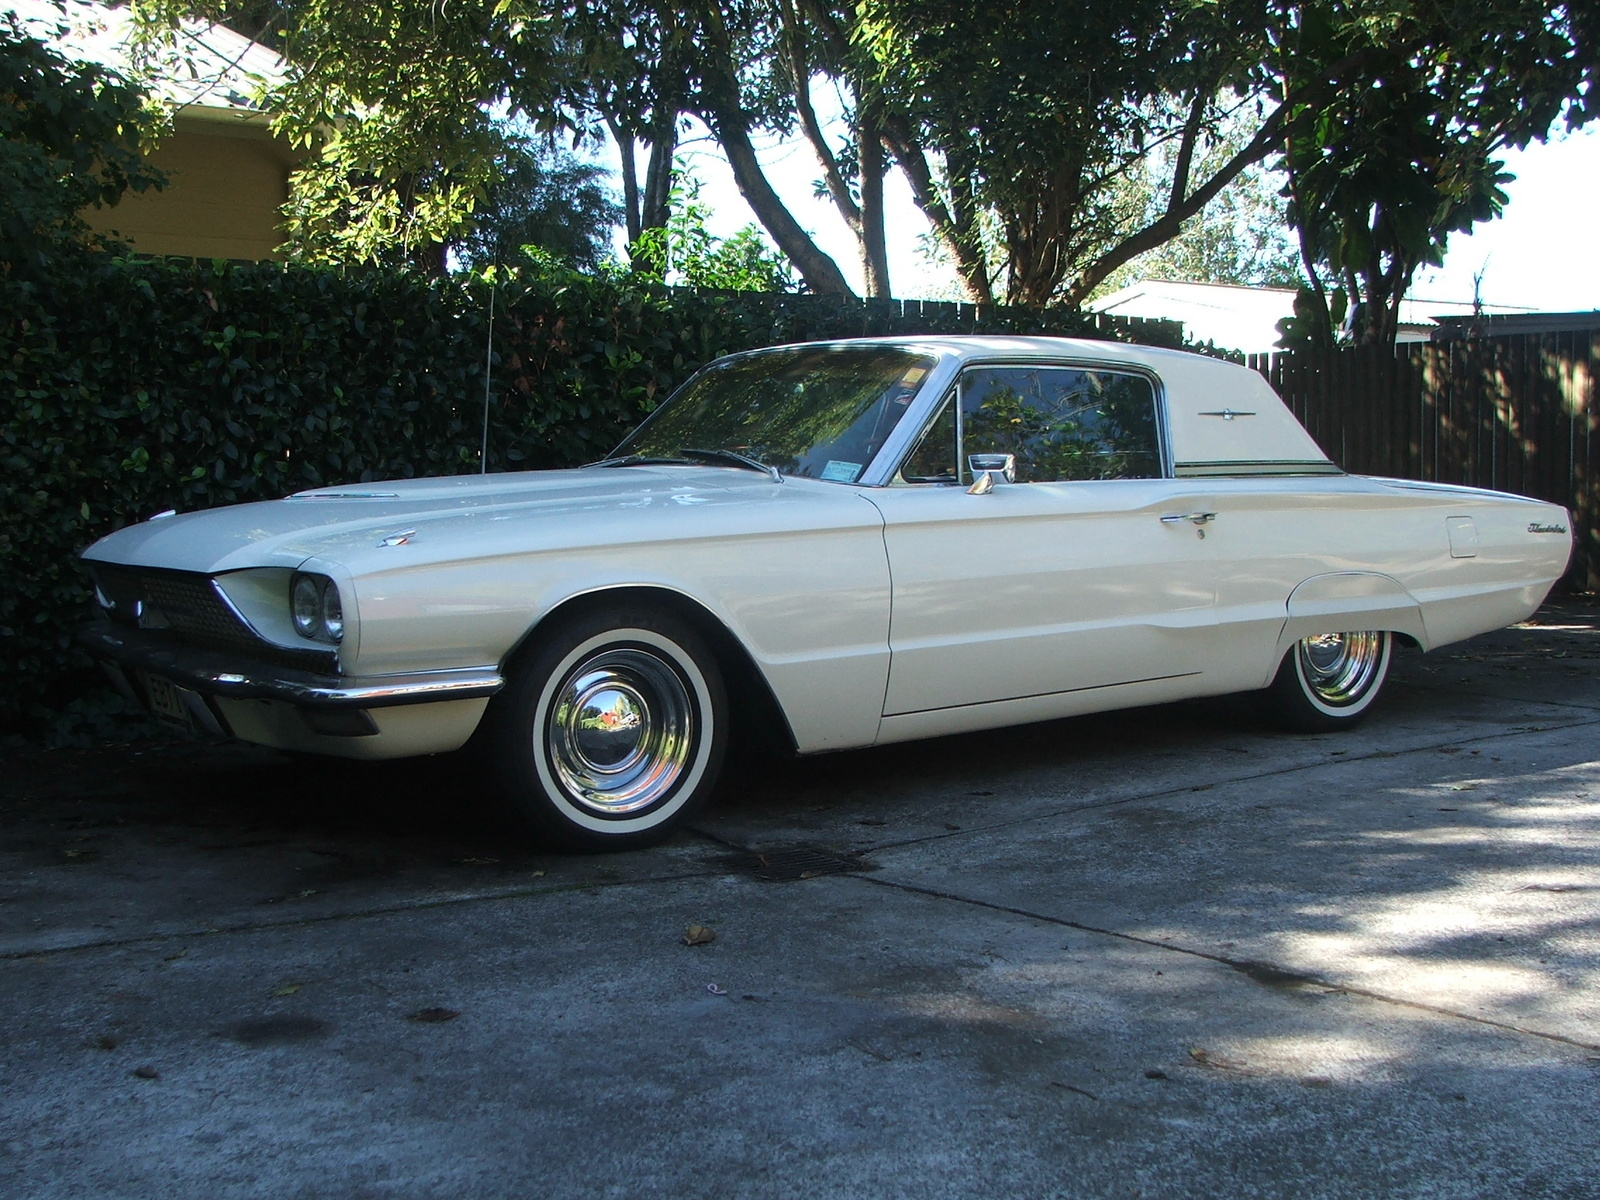 1963 Ford Thunderbird Pictures C4617 additionally Wiring Diagram For 1964 Ford Thunderbird together with 1968 Ford Thunderbird Pictures C4622 together with 1966 Ford Thunderbird Pictures C4620 pi35728198 furthermore 1963 Ford Falcon Pictures C13141 pi36368231. on 1965 ford ranchero